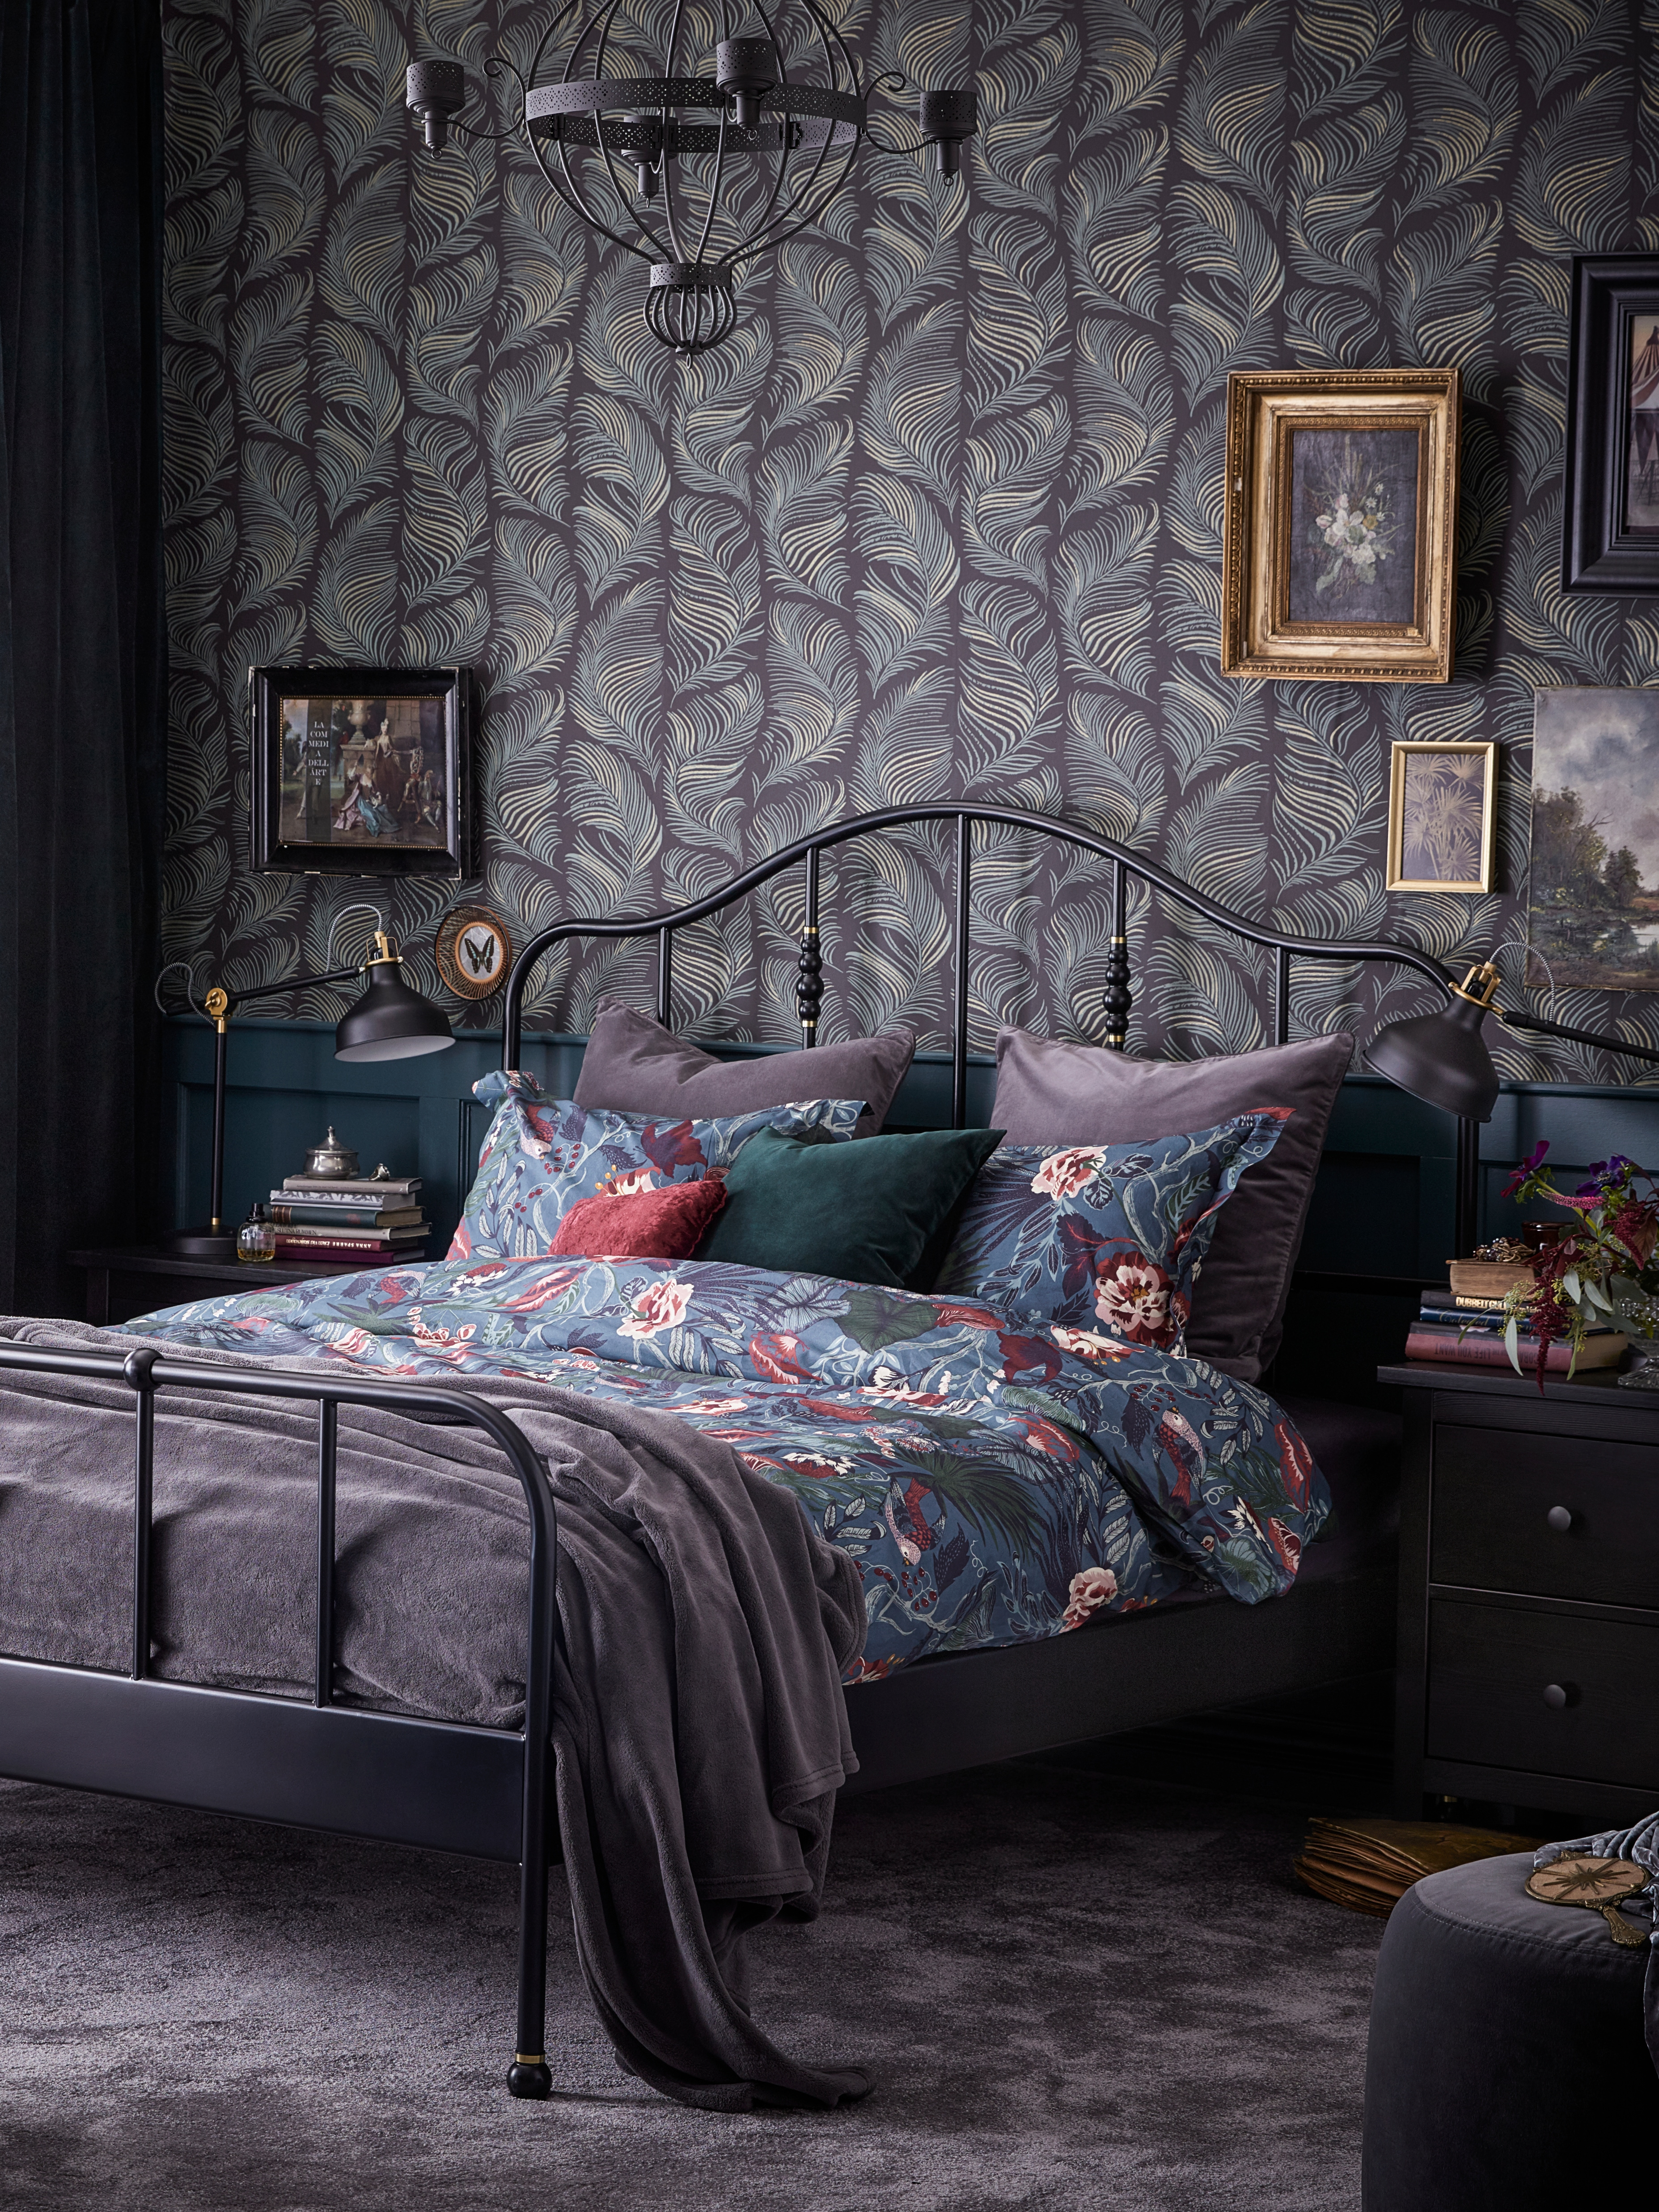 A SAGSTUA black bed frame with a dark blue floral patterned quilt cover is next to a black chest of two drawers in a bedroom.